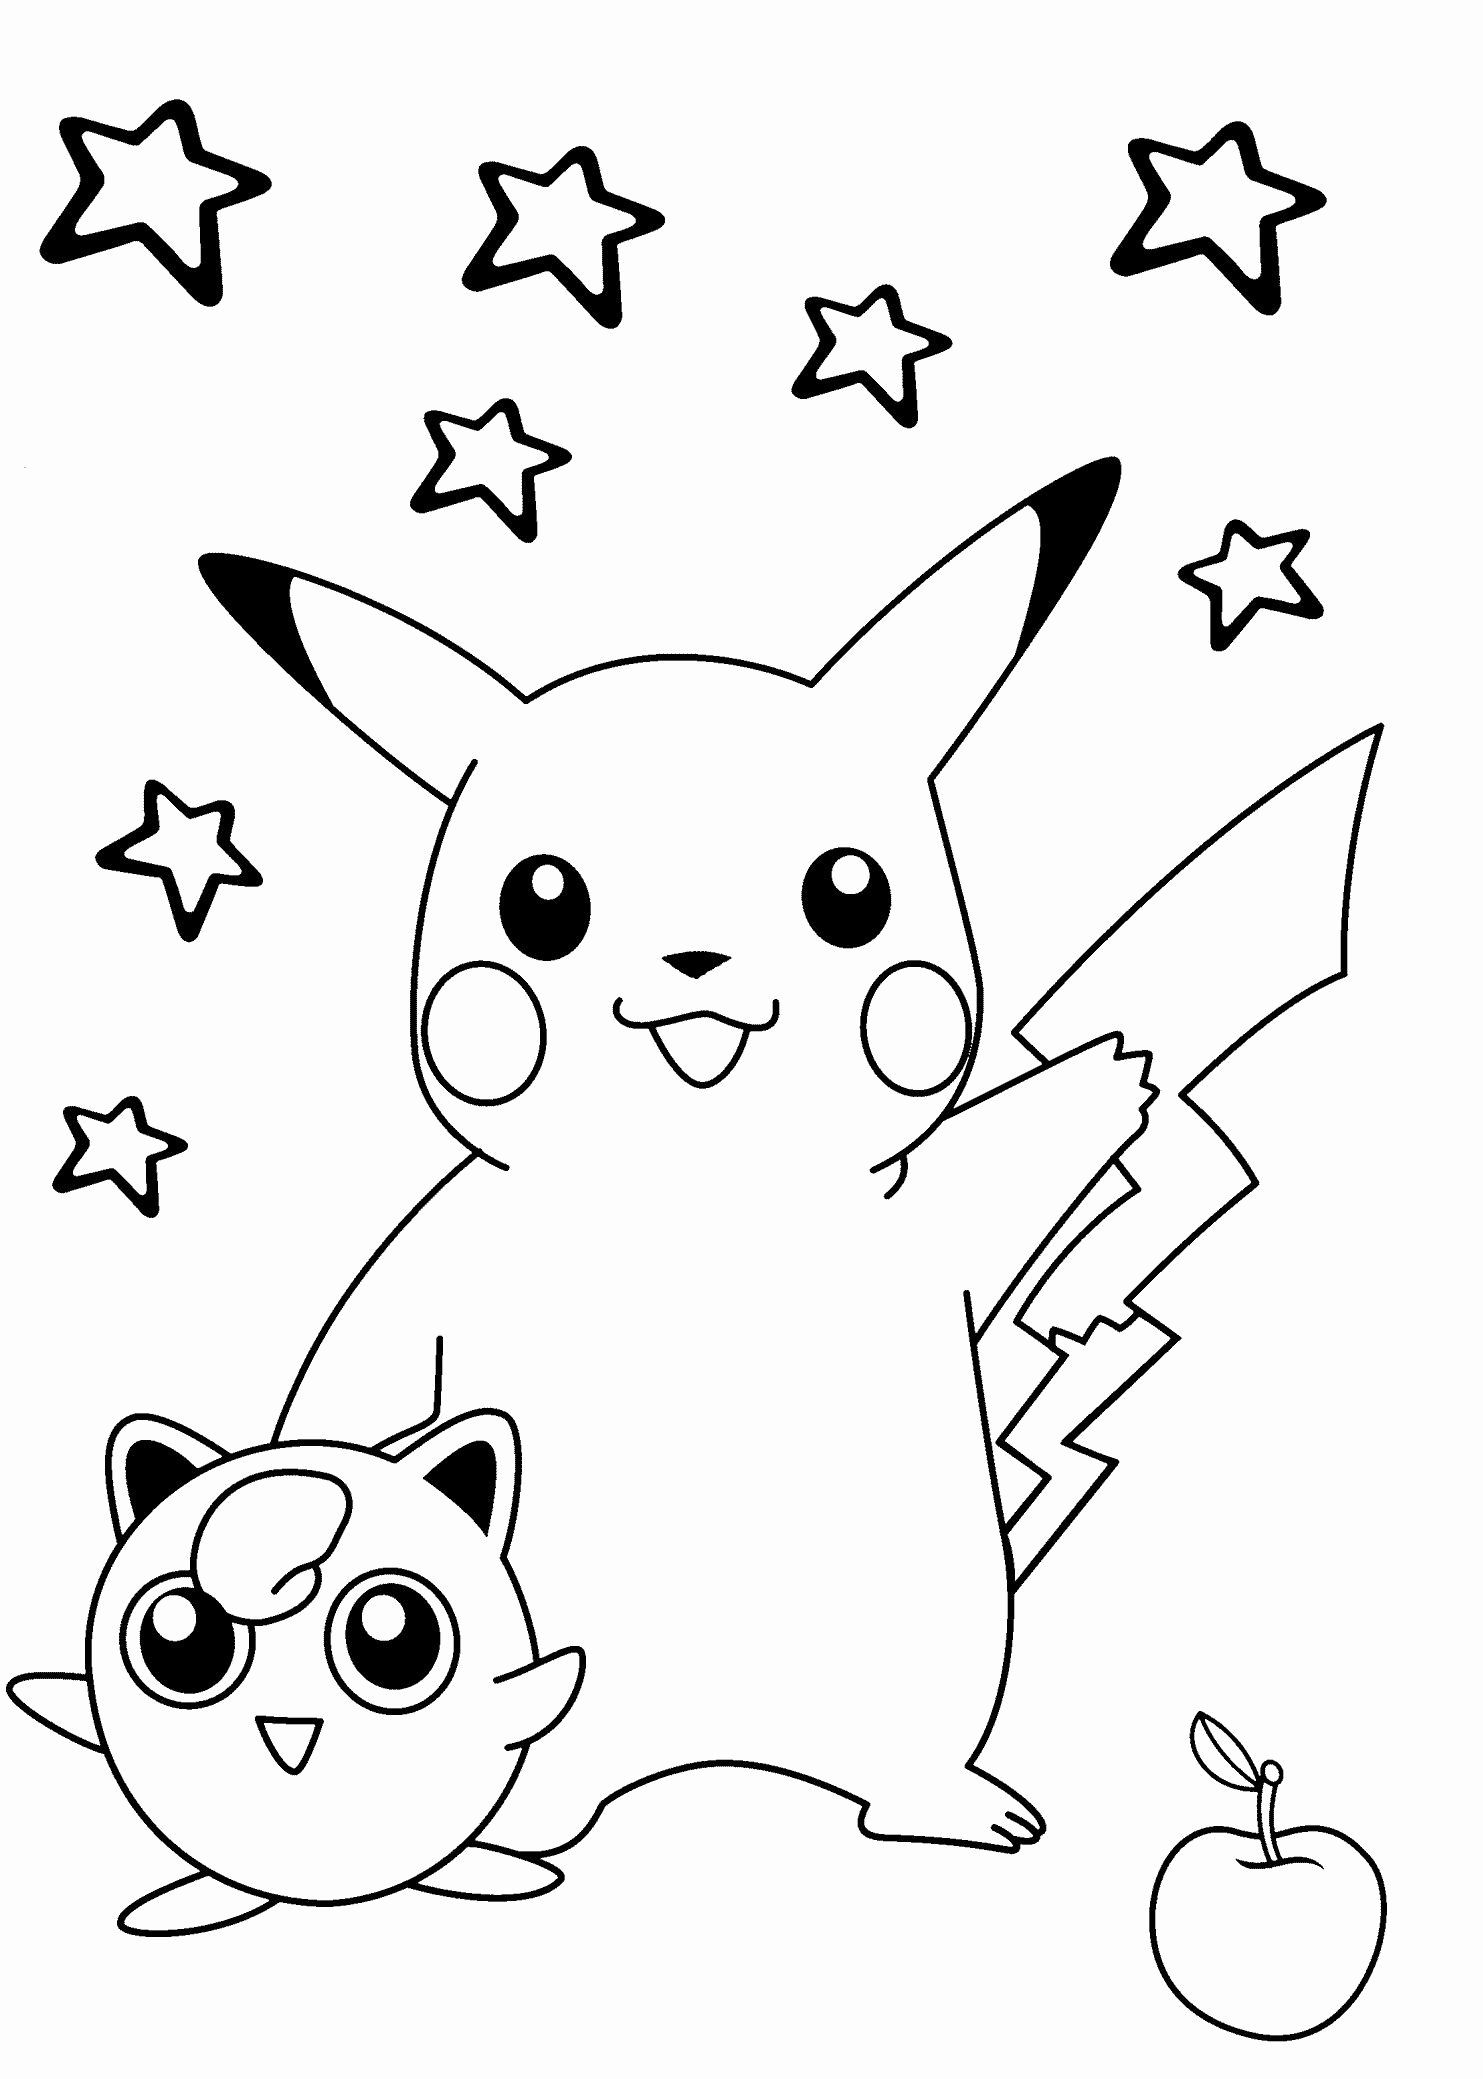 Cartoons Coloring Book Pdf New Of Pokemon Coloring Book